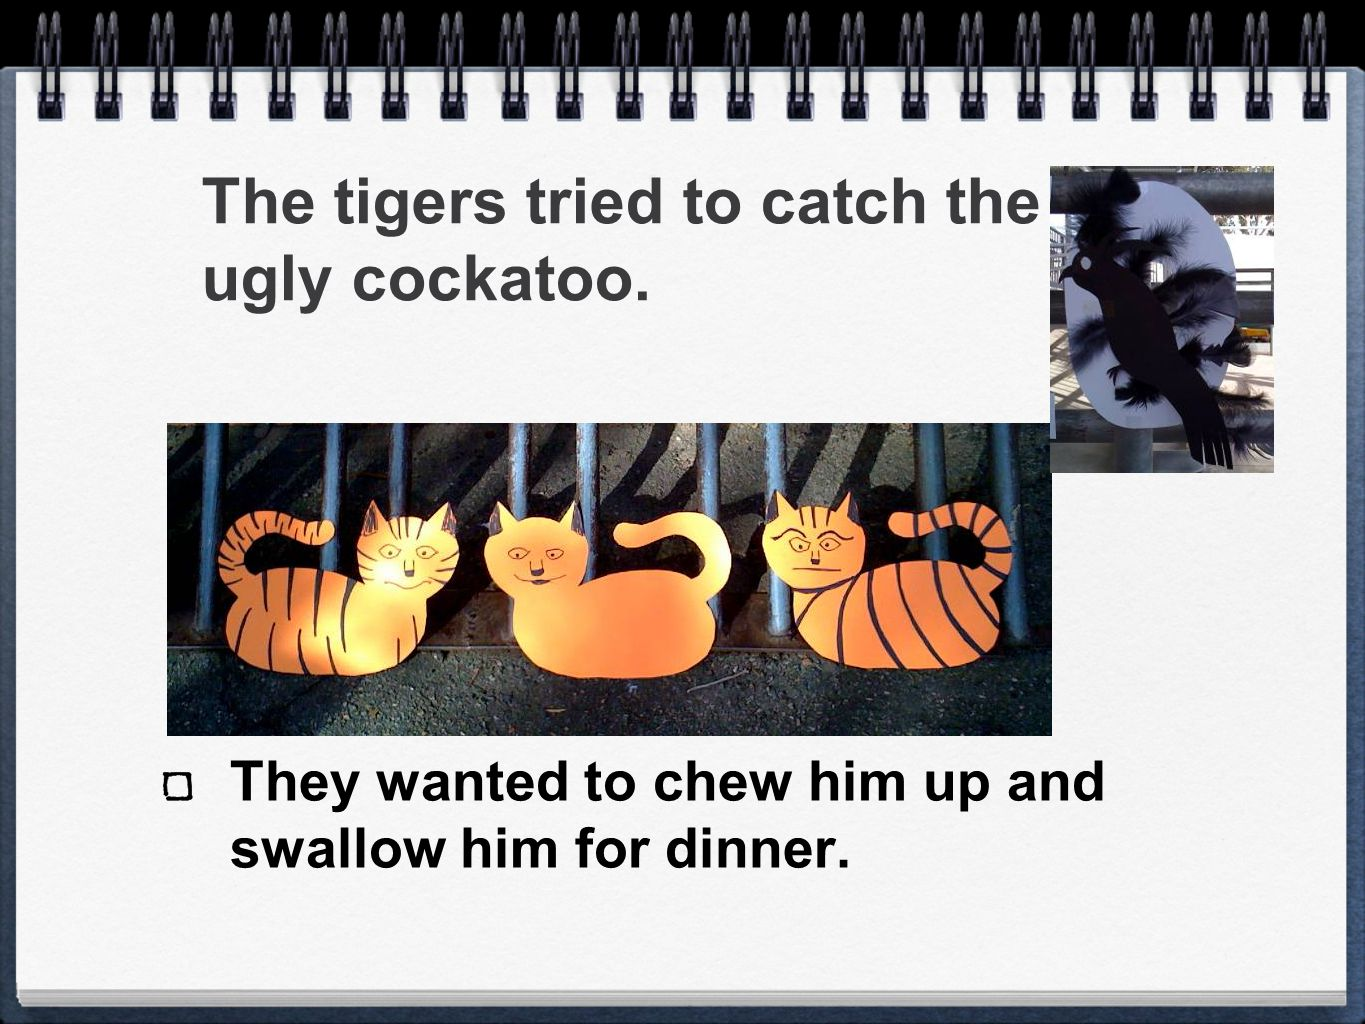 The tigers tried to catch the ugly cockatoo. They wanted to chew him up and swallow him for dinner.